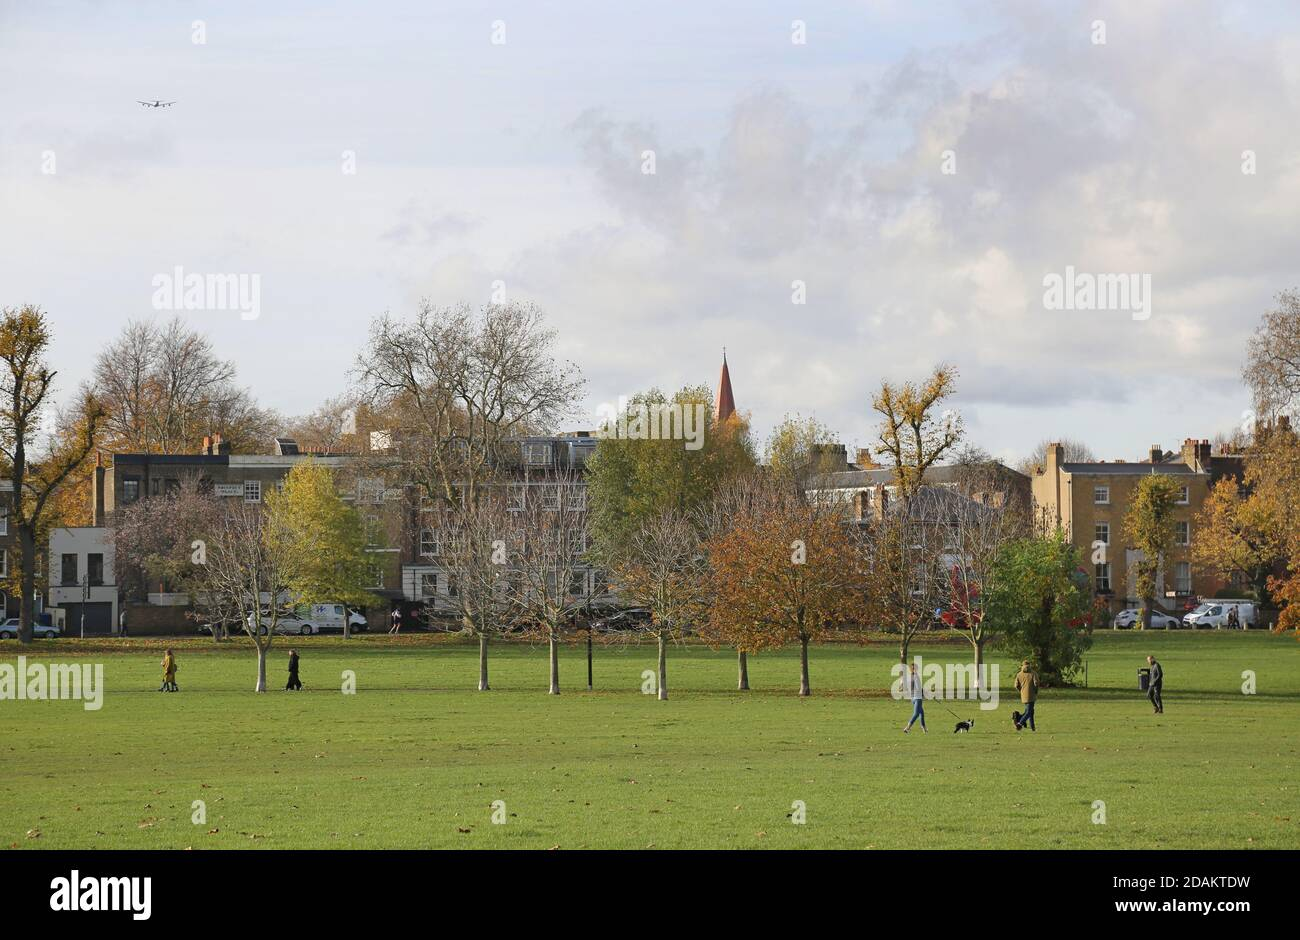 Walkers cyclists and dog-walkers enjoy a sunny autumn day on Peckham Rye Common, south east London, UK. Stock Photo